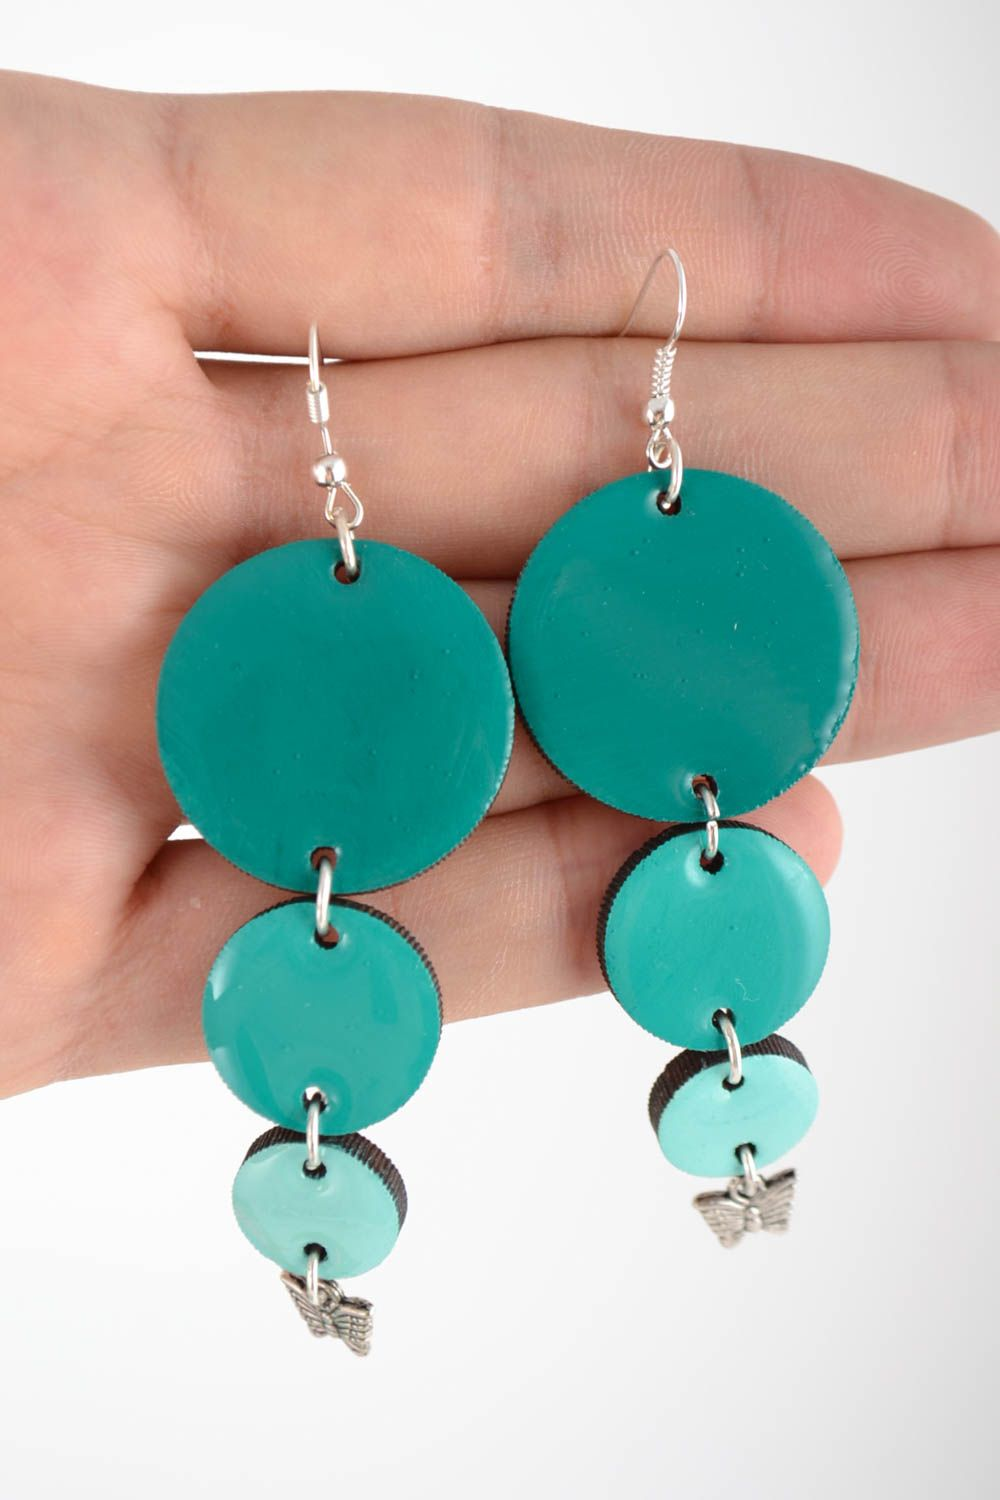 Handmade earrings made of wood and coated with epoxy resin turquoise color photo 5